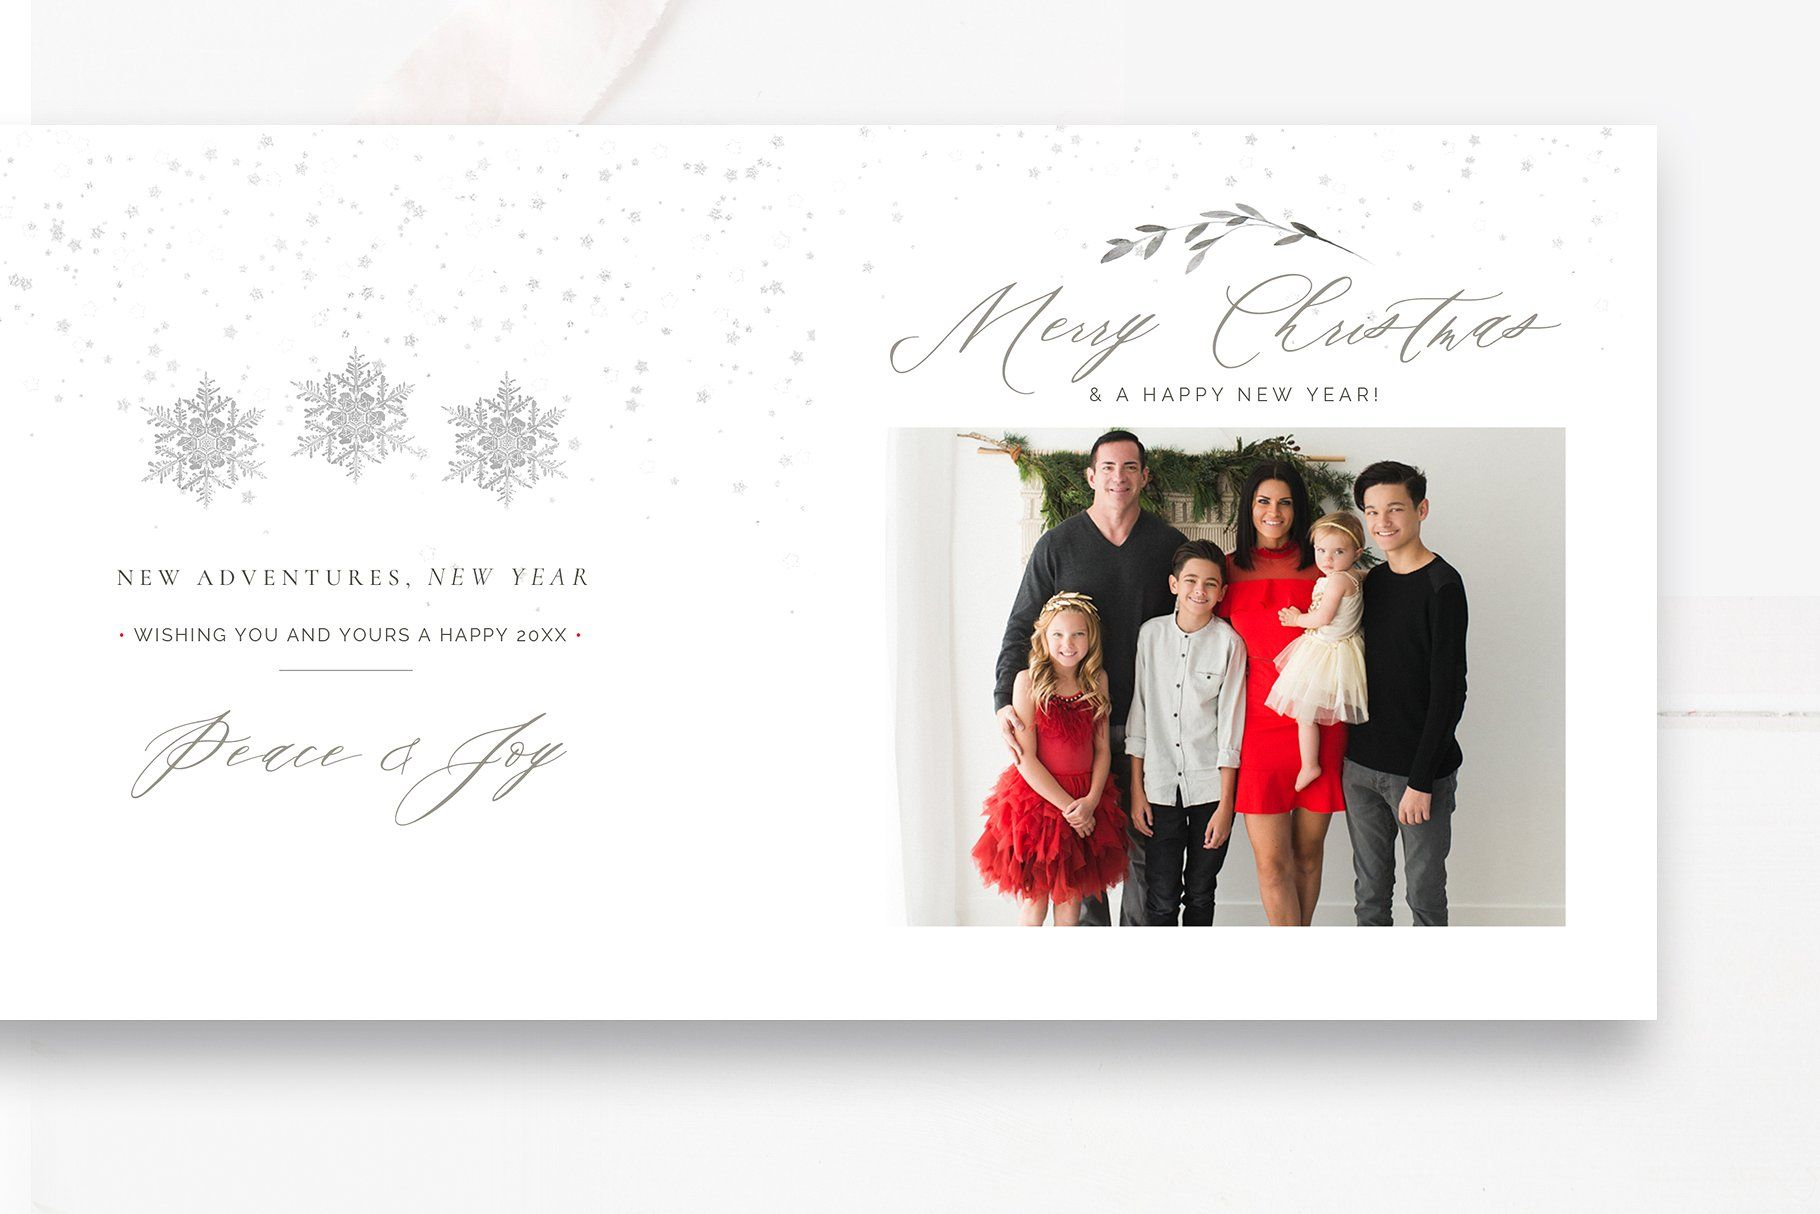 Accordion Christmas Card Template Photoshop Template By Stephanie Design Christmas Card Template Card Template Photoshop Template Design